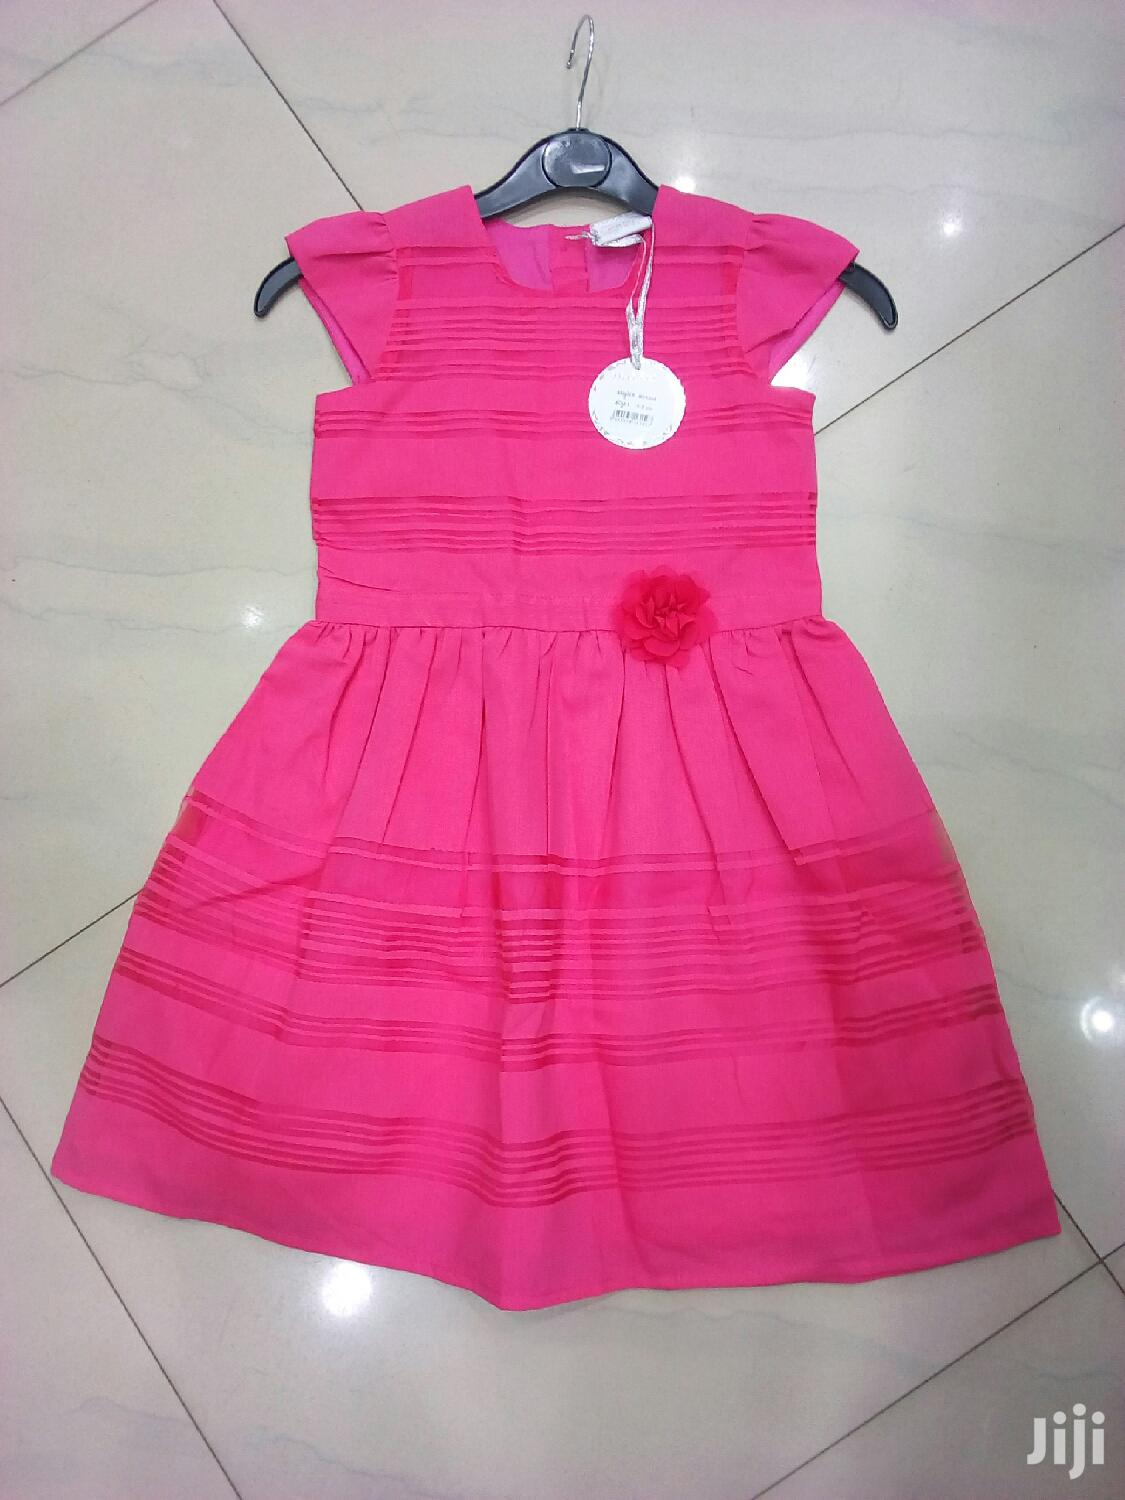 Authentic Party Dress for Girls From UK